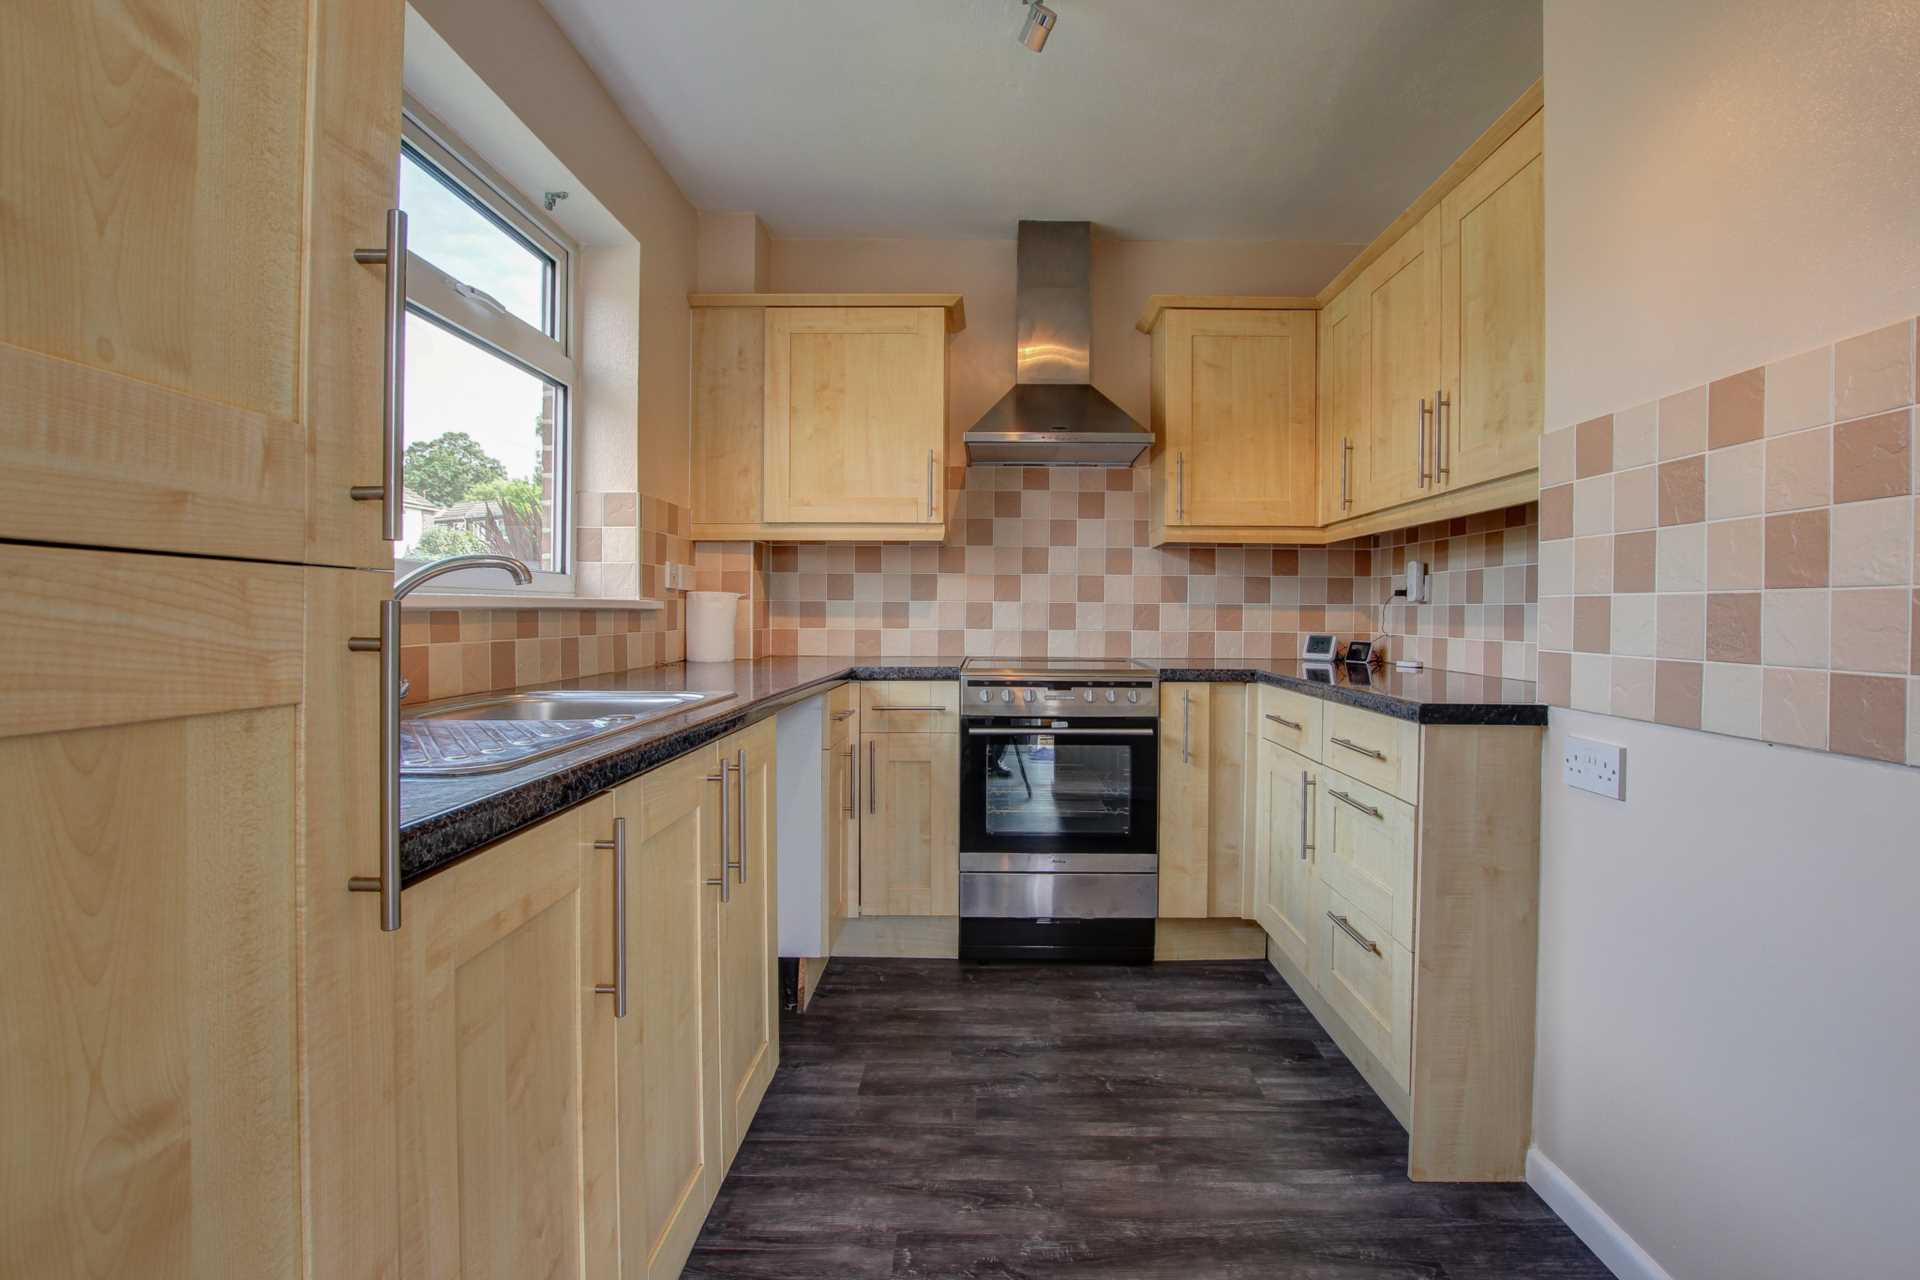 2 bed end of terrace house to rent in Fishers Close, Blandford Forum, Blandford Forum  - Property Image 2